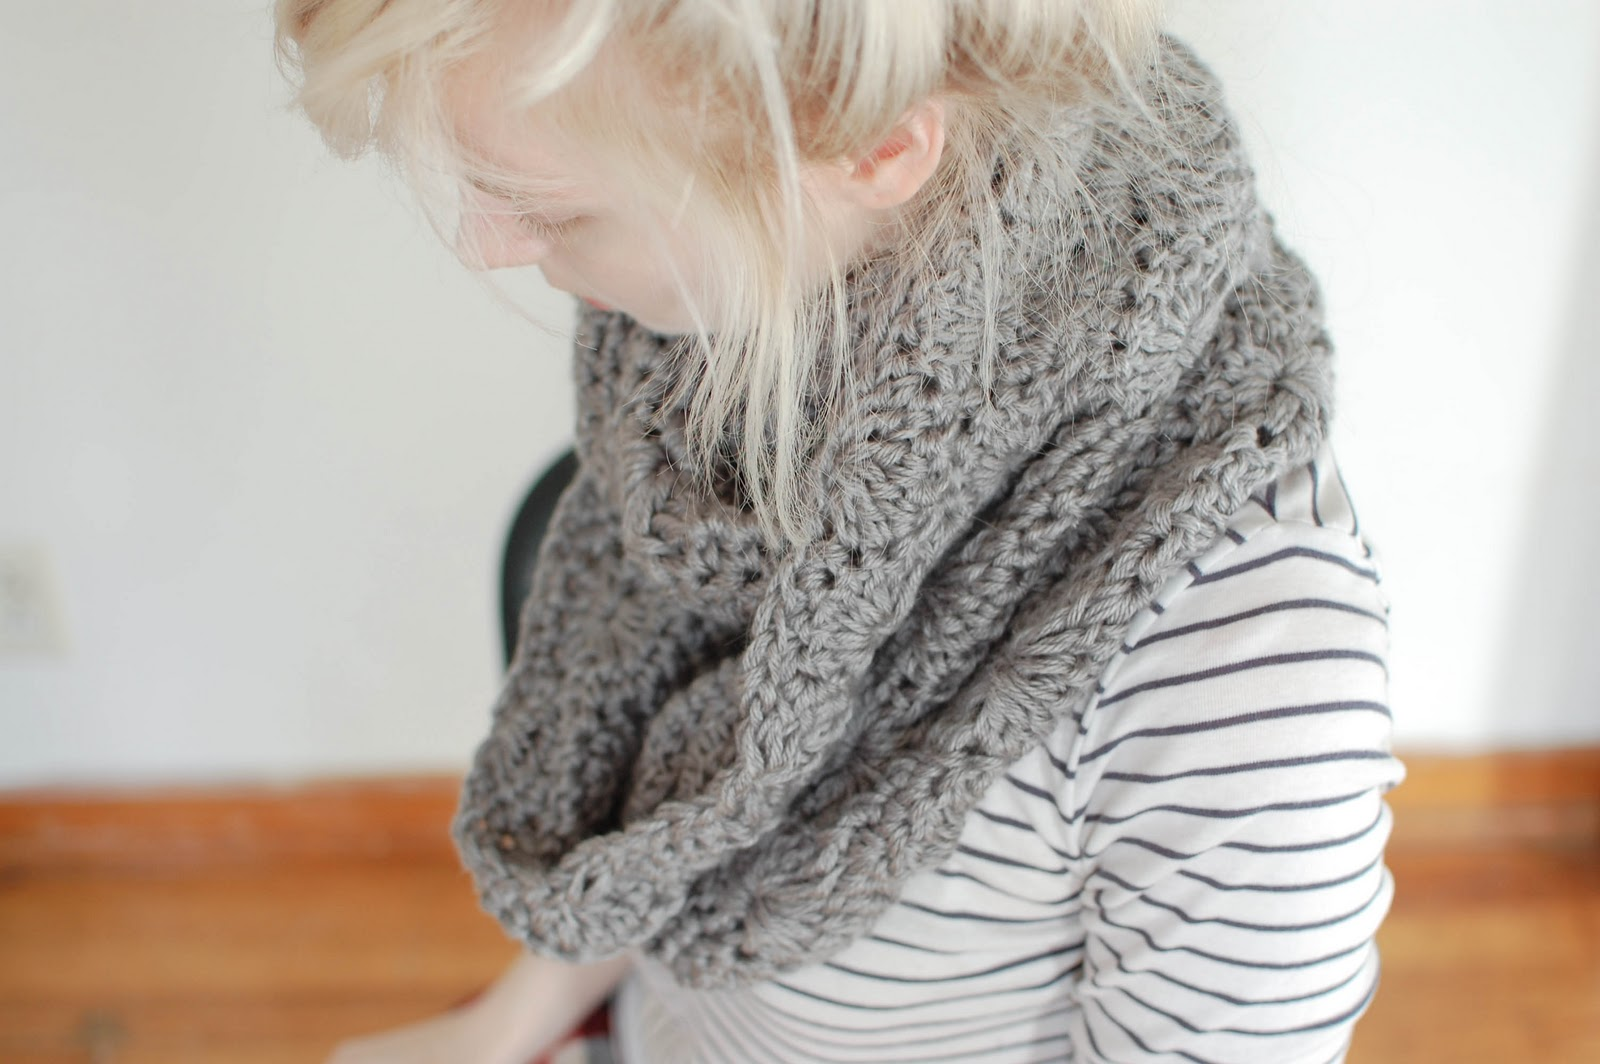 Crochet Patterns Using Chunky Yarn : CHUNKY CROCHET PATTERN SCARF USING YARN Patterns